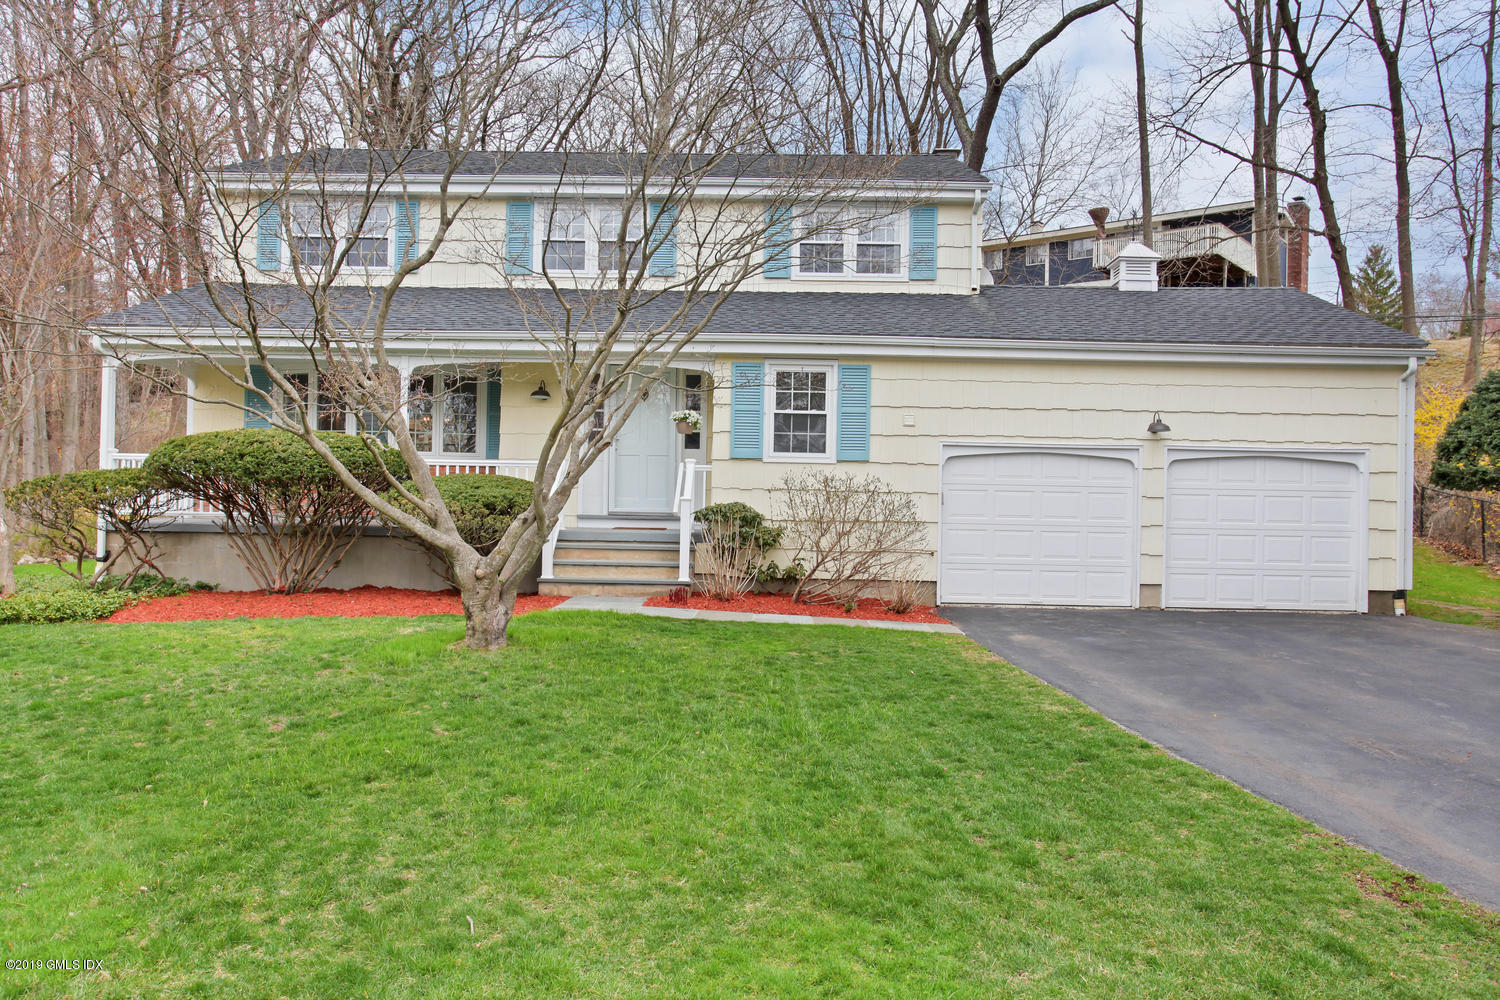 28 Revere Road,Riverside,Connecticut 06878,4 Bedrooms Bedrooms,2 BathroomsBathrooms,Single family,Revere,106176